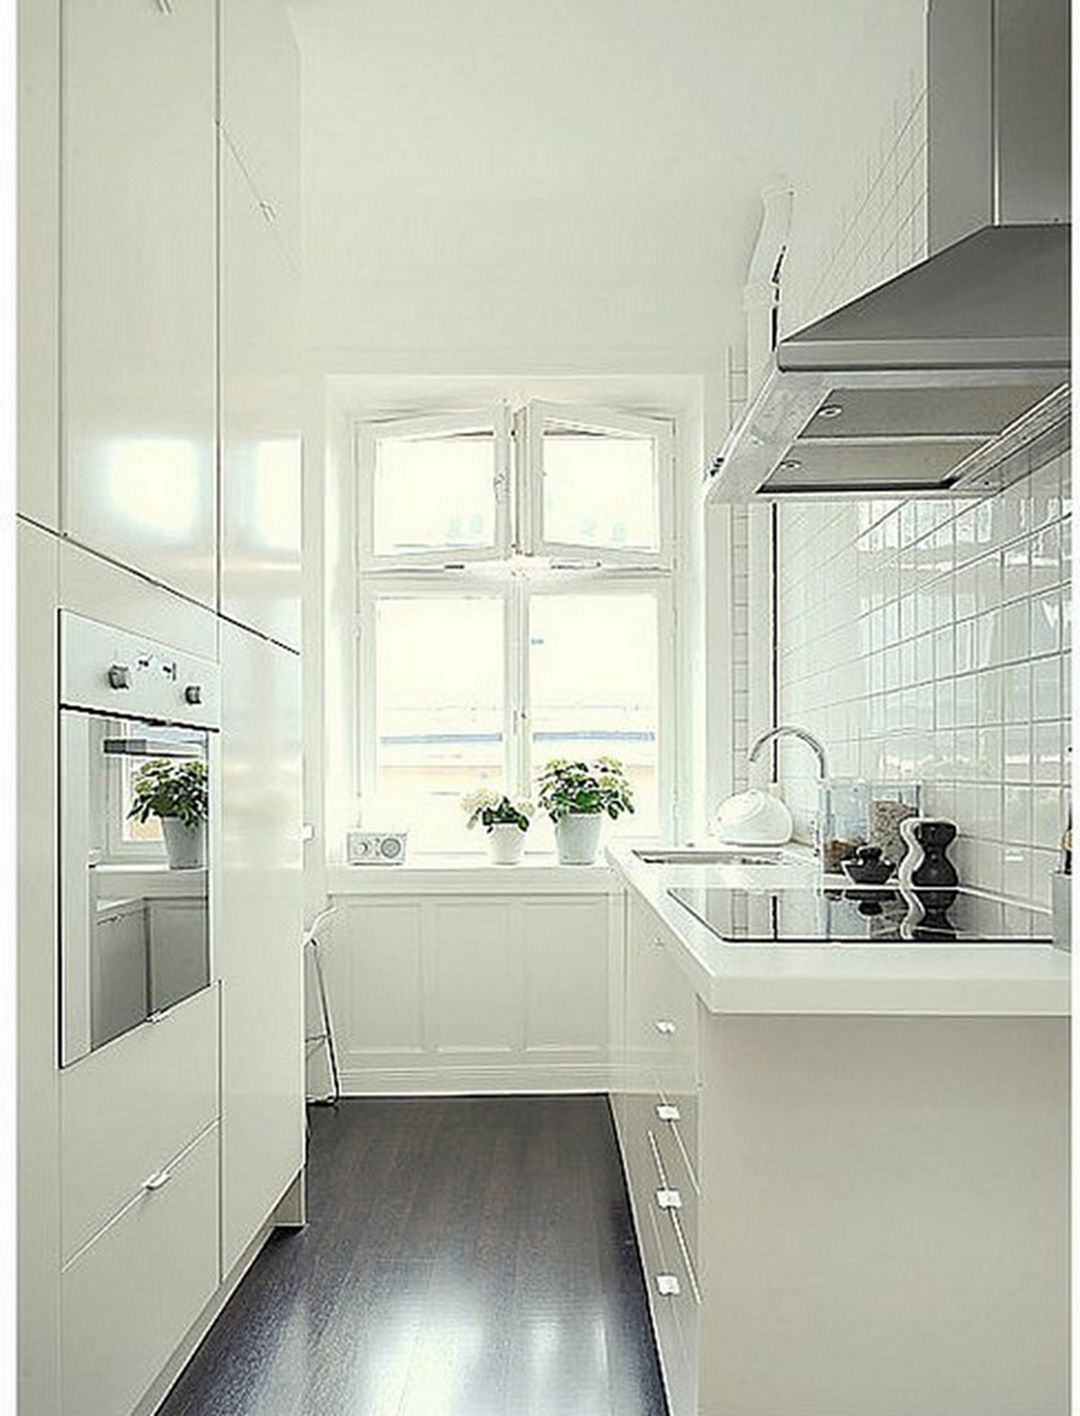 Small Spaces Big Solutions A Modern Haven In 2020 Tiny House Kitchen Small Remodel Kitchen Remodel Small